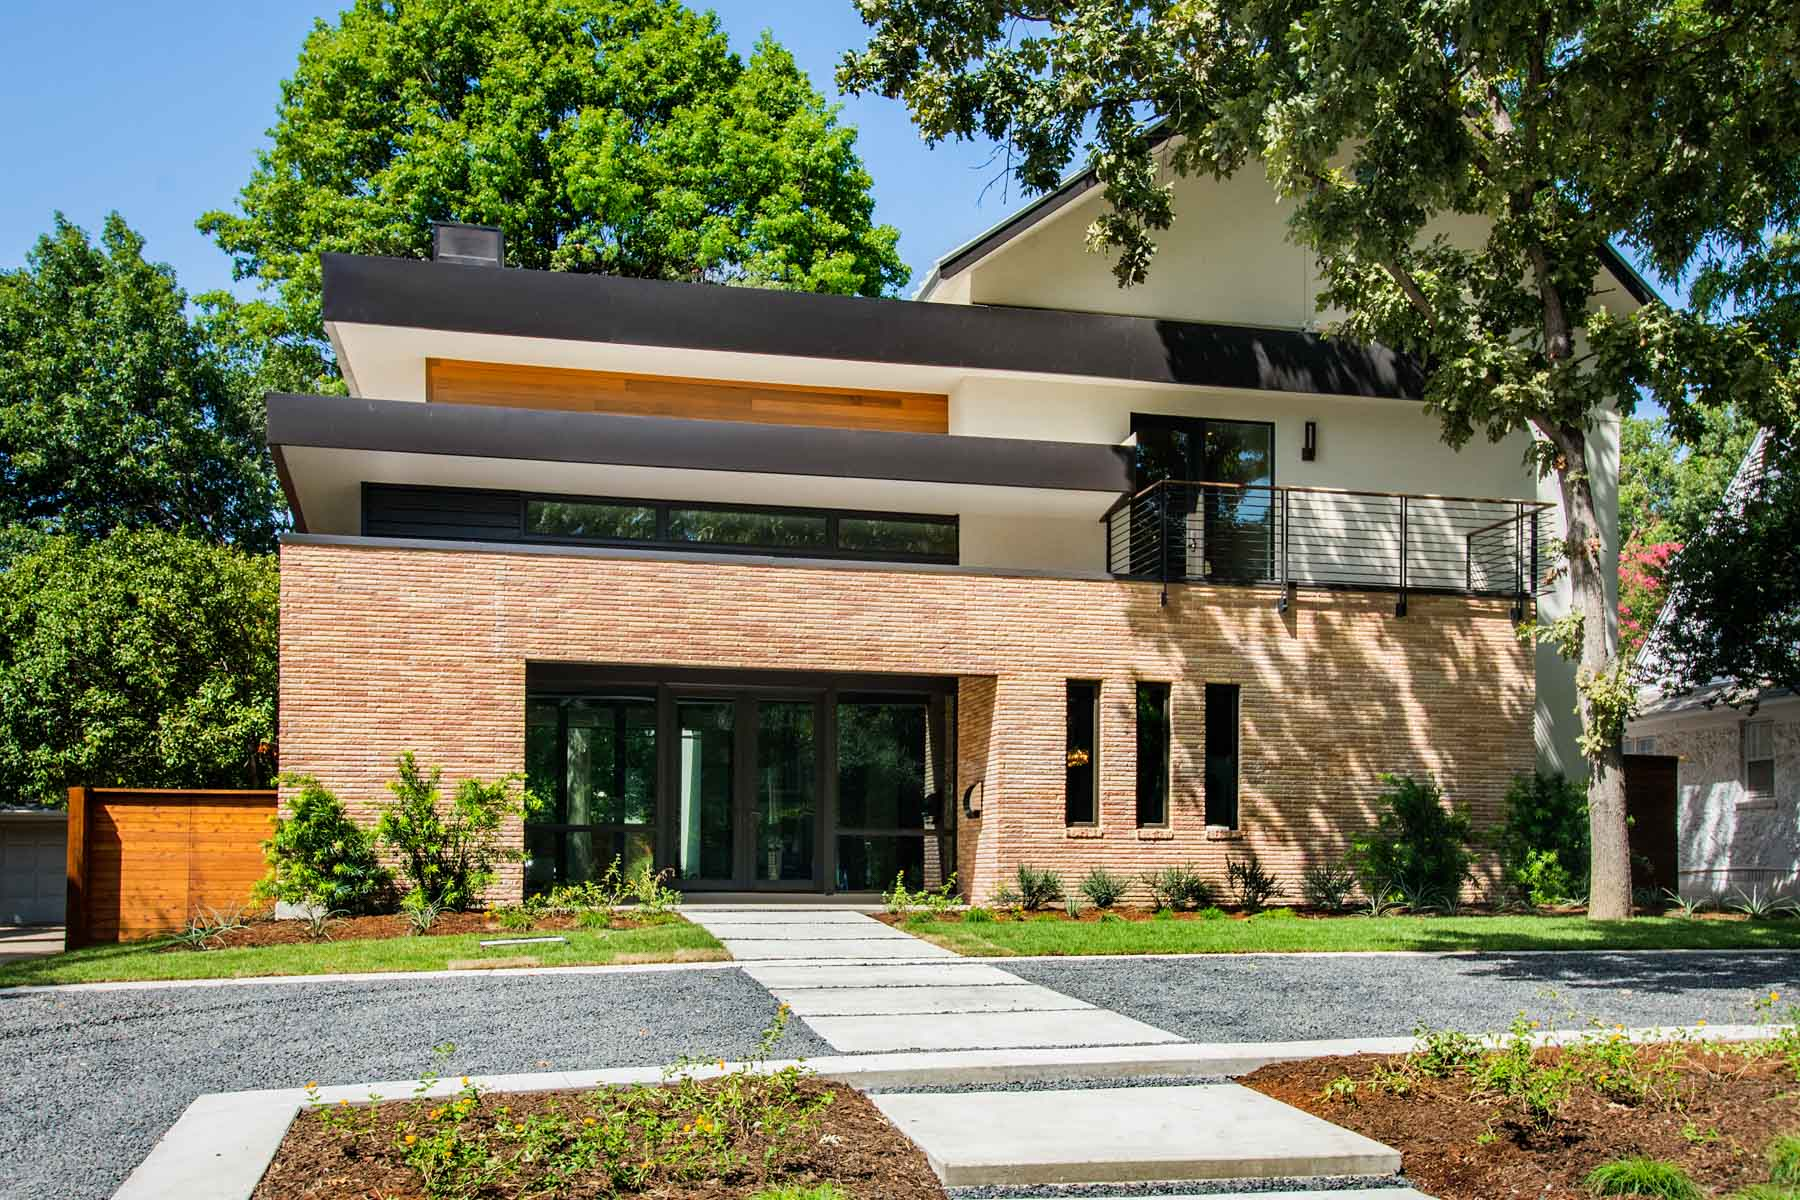 一戸建て のために 売買 アット Stunning Modern Design by Renown Architect Tom Reisenbichler 3300 Bryn Mawr Drive Dallas, テキサス, 75225 アメリカ合衆国